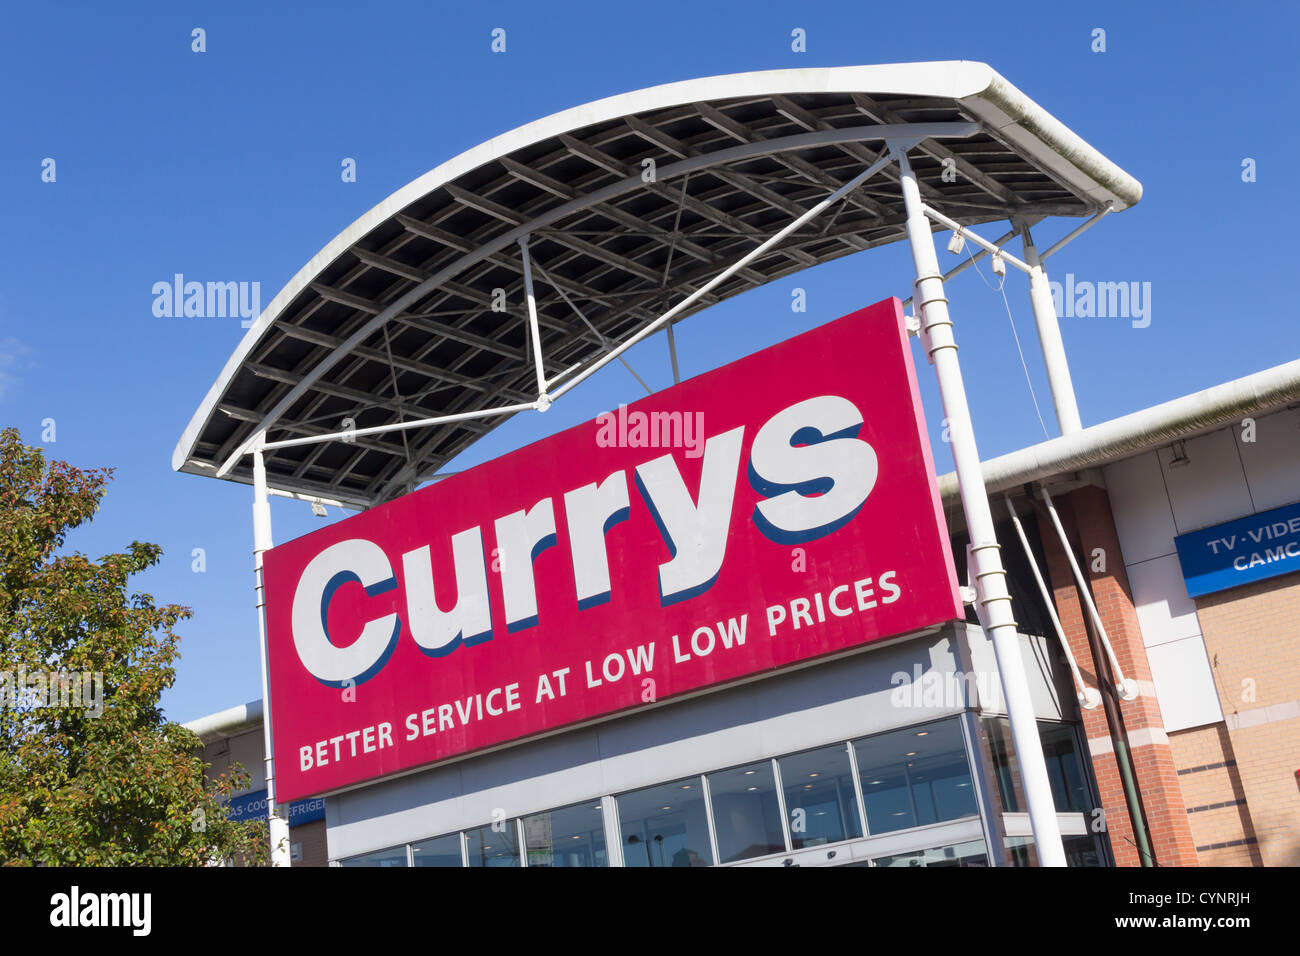 The entrance to Currys electrical appliance retail store on Bolton Gate Retail Park, Bolton. - Stock Image